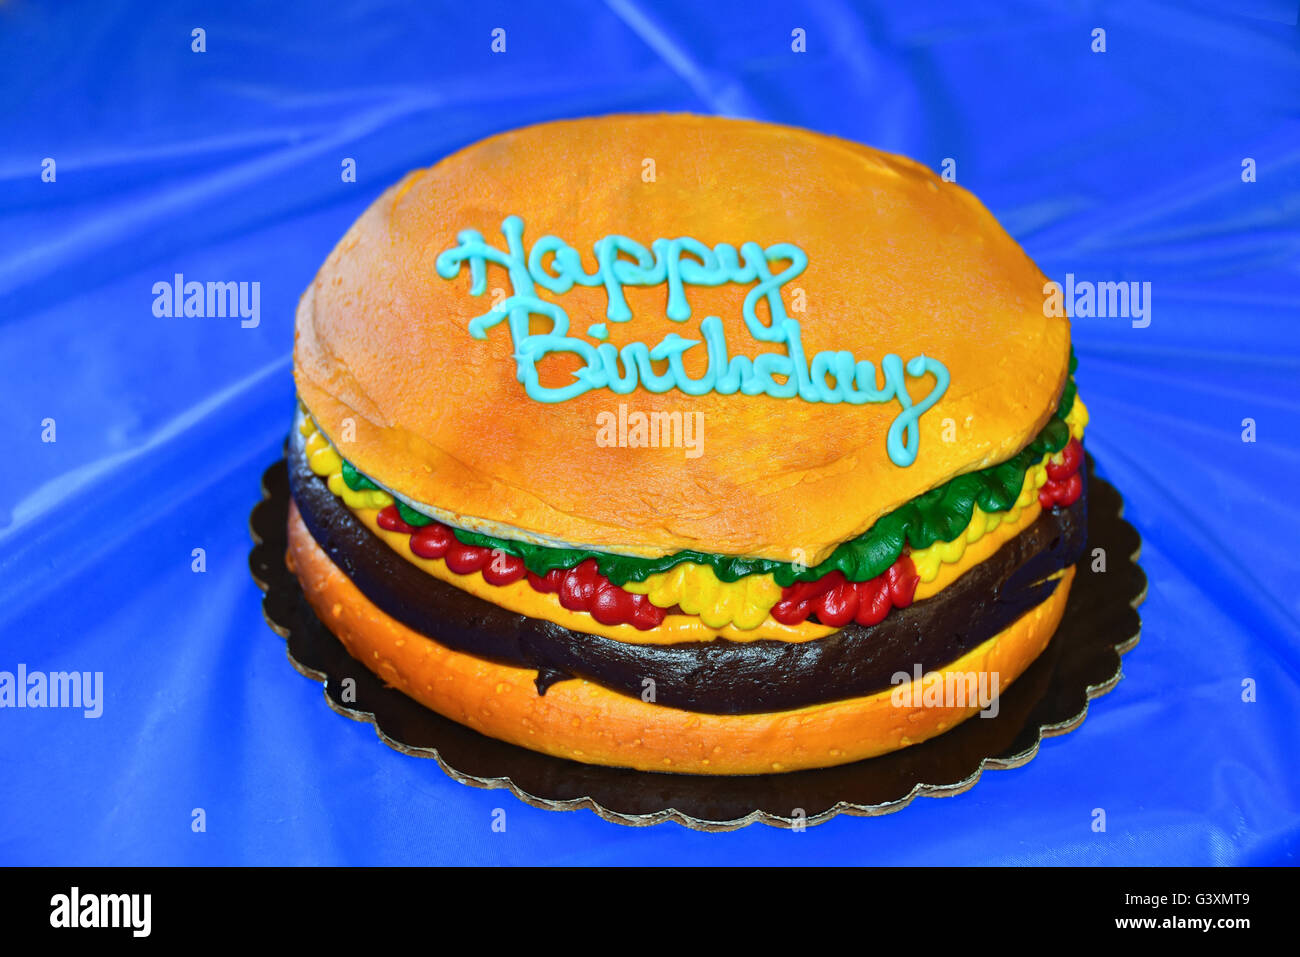 Pleasing Happy Birthday Cake In A Shape Of A Hamburger On Blue Plastic Funny Birthday Cards Online Inifofree Goldxyz